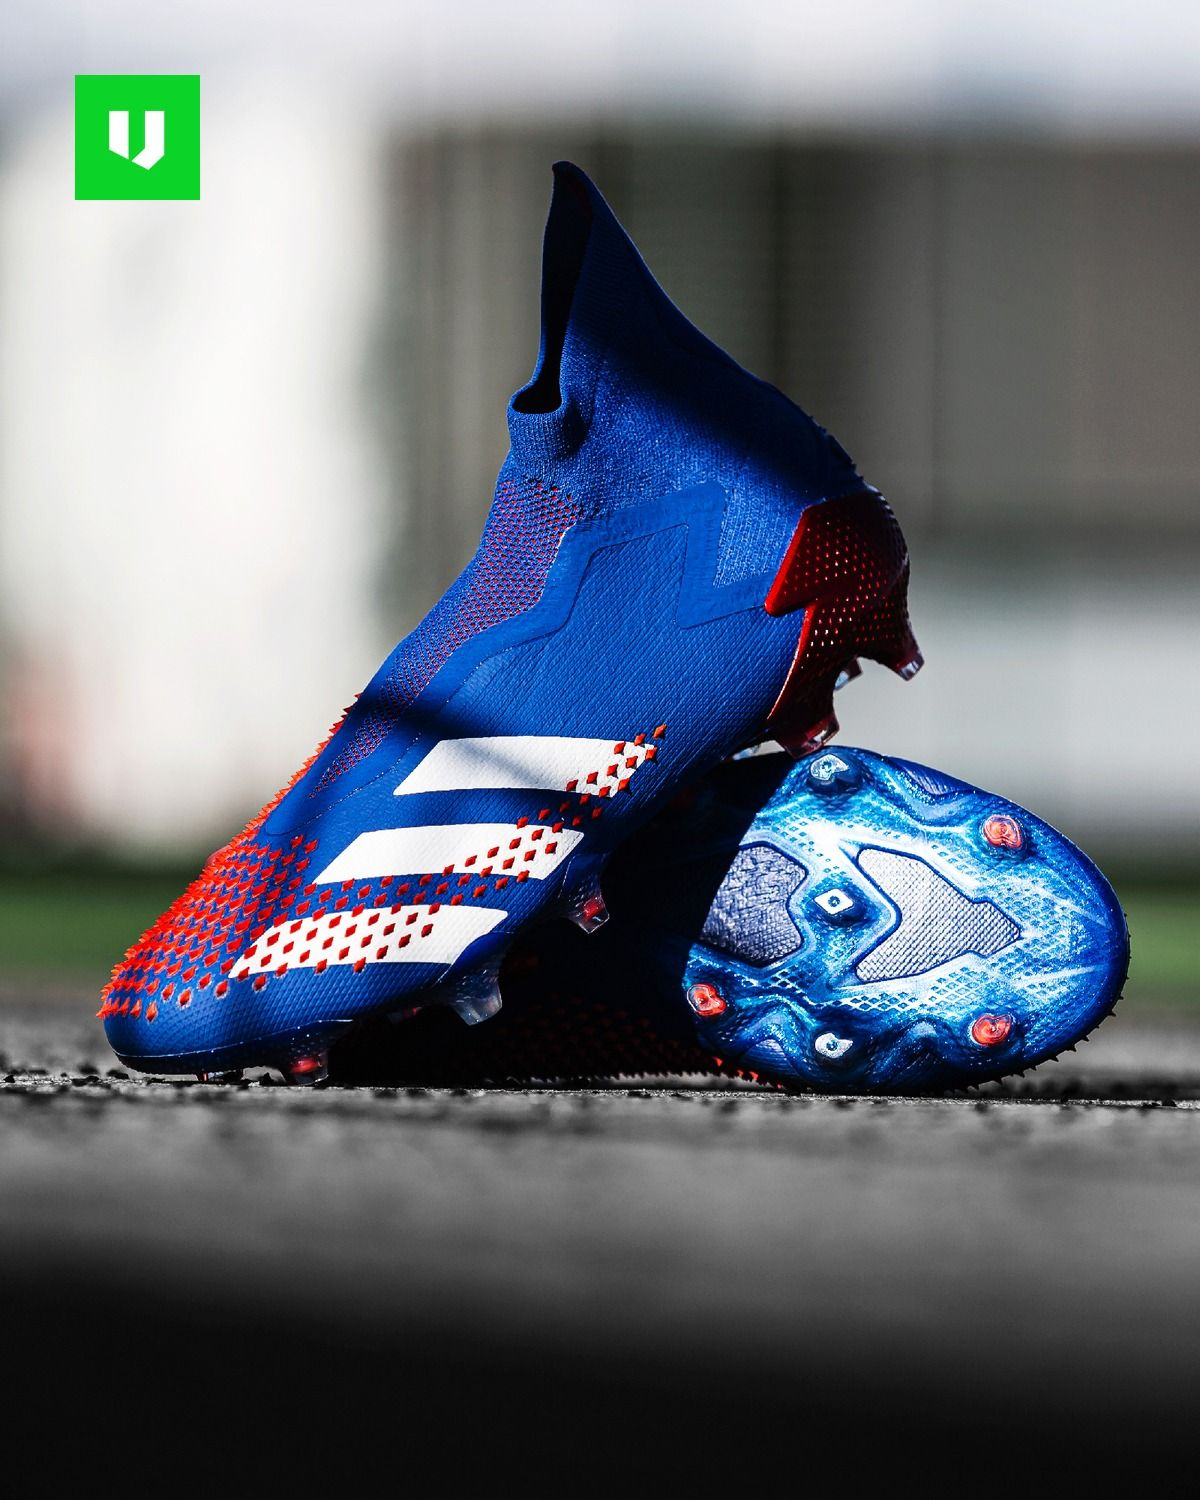 The Tormented Predator In 2020 Latest Football Boots Soccer Boots Predator Football Boots